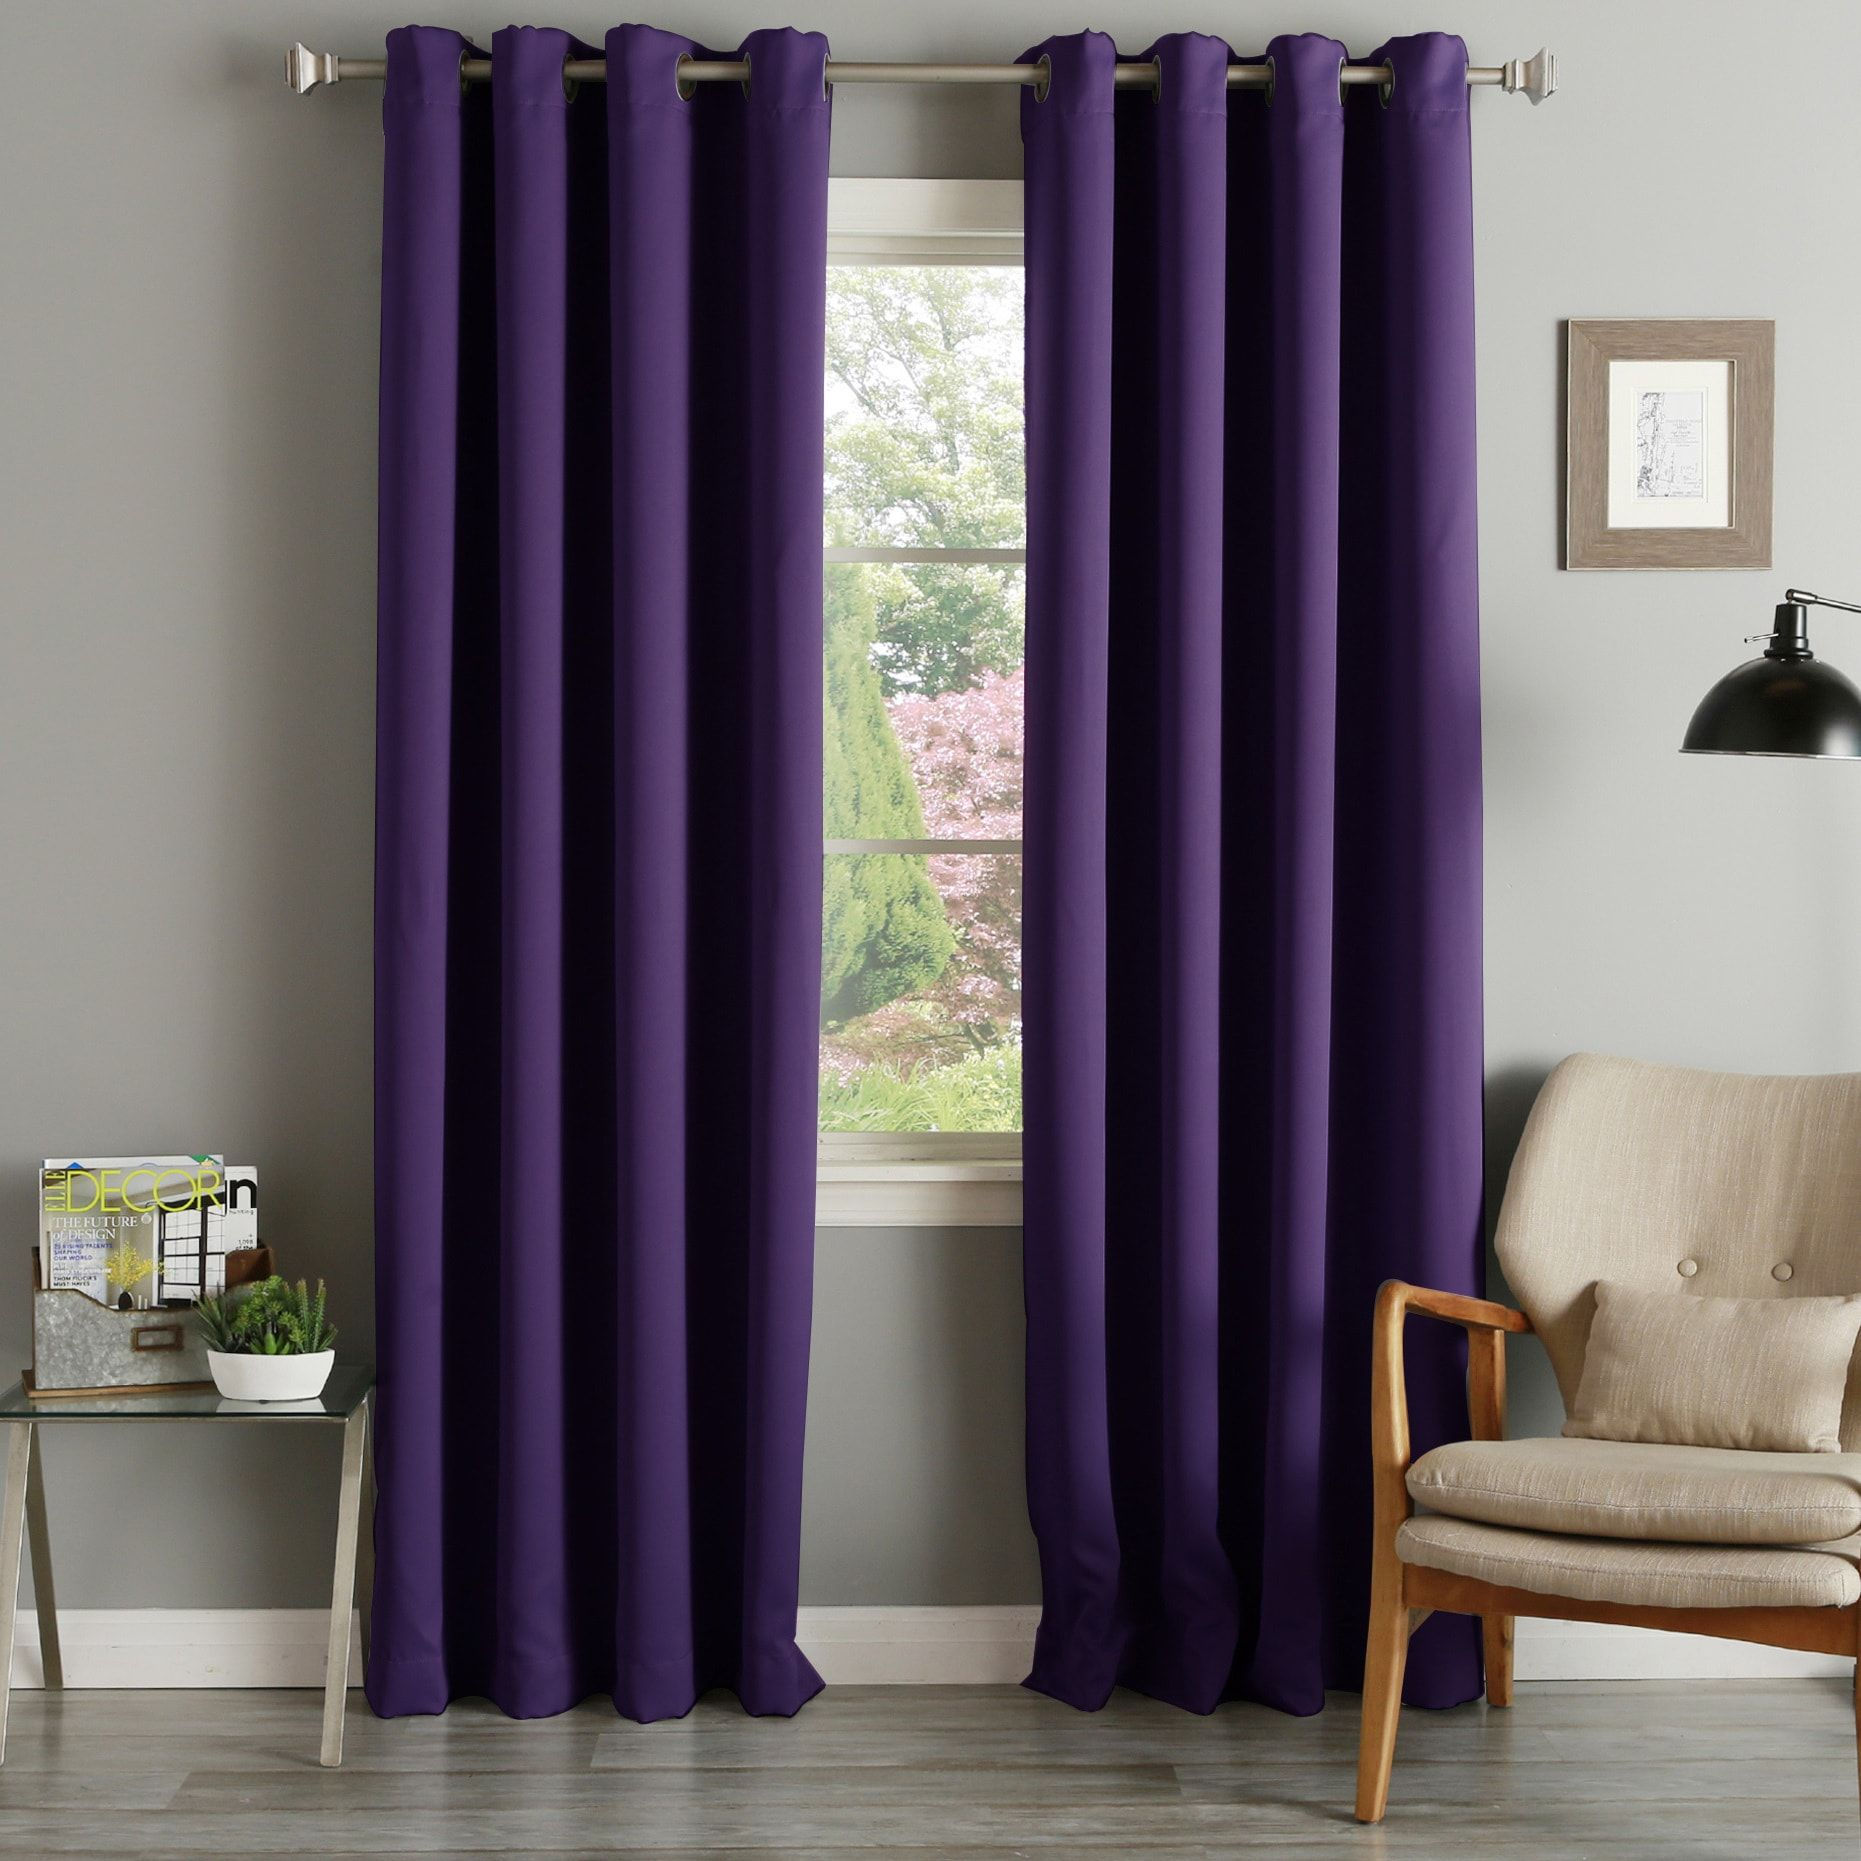 Aurora Home Grommet Top Thermal Insulated 96 Inch Blackout With Regard To Thermal Insulated Blackout Grommet Top Curtain Panel Pairs (View 13 of 30)